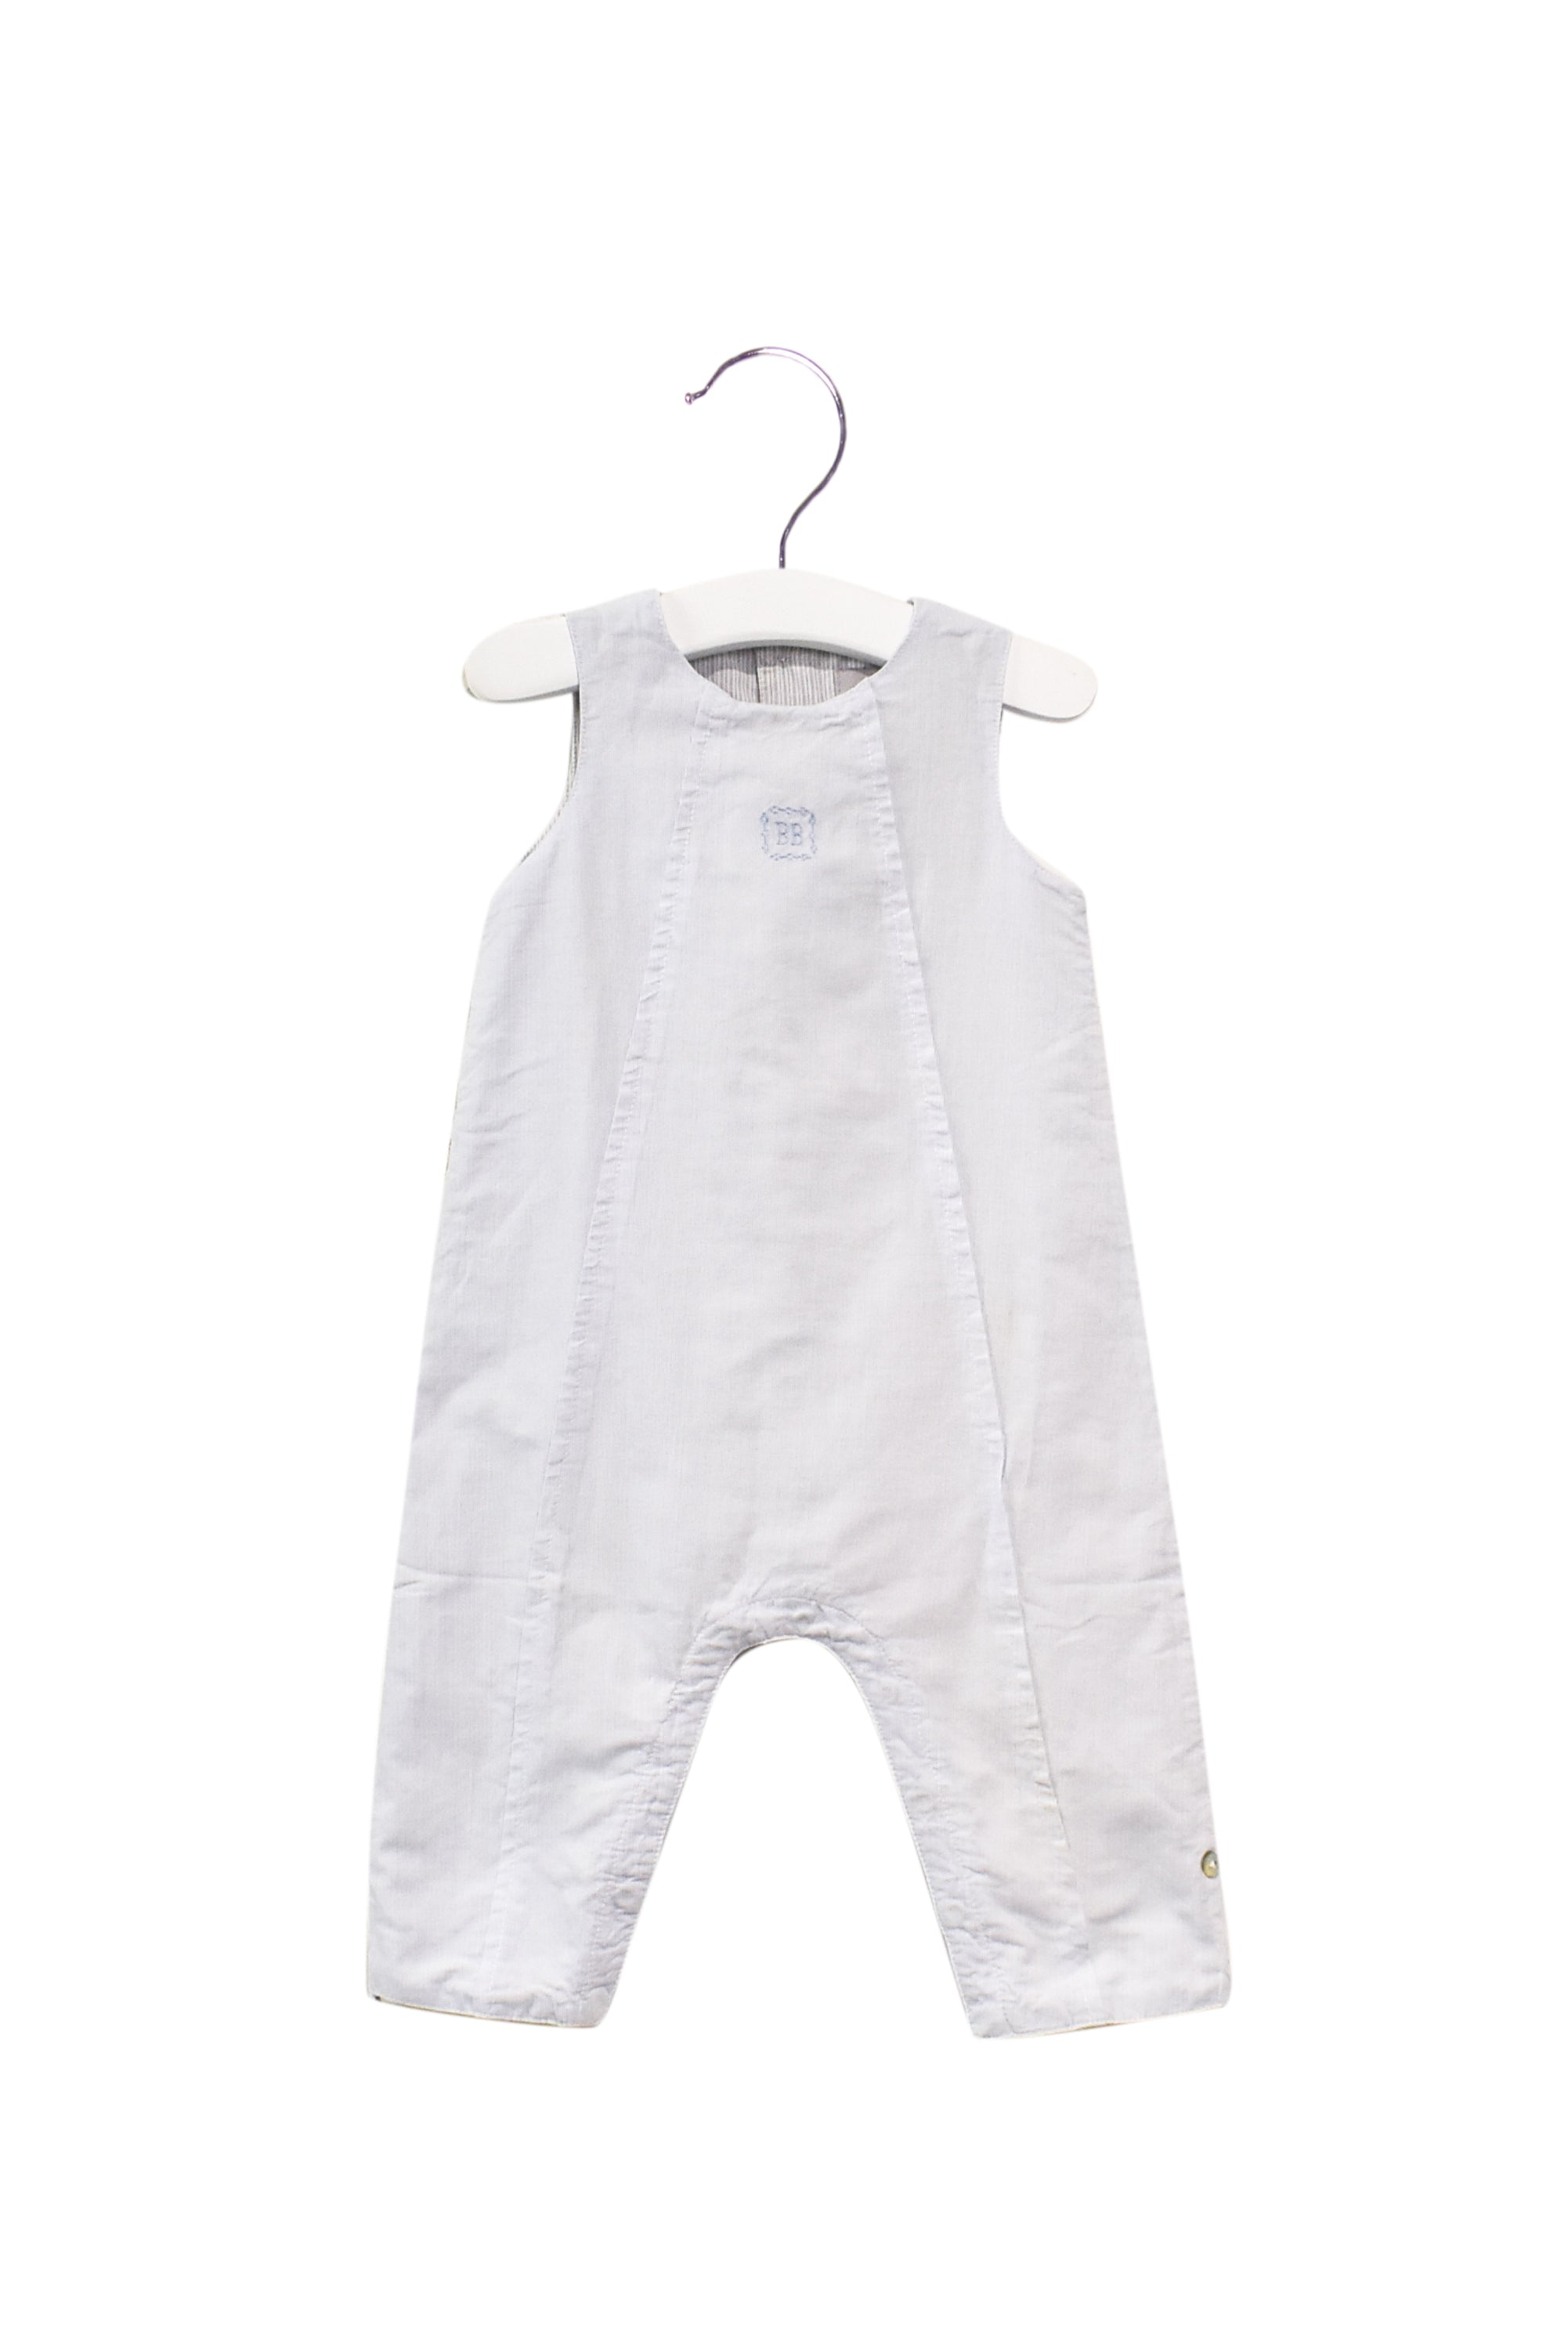 10028378 Cyrillus Baby~Jumpsuit 6M at Retykle